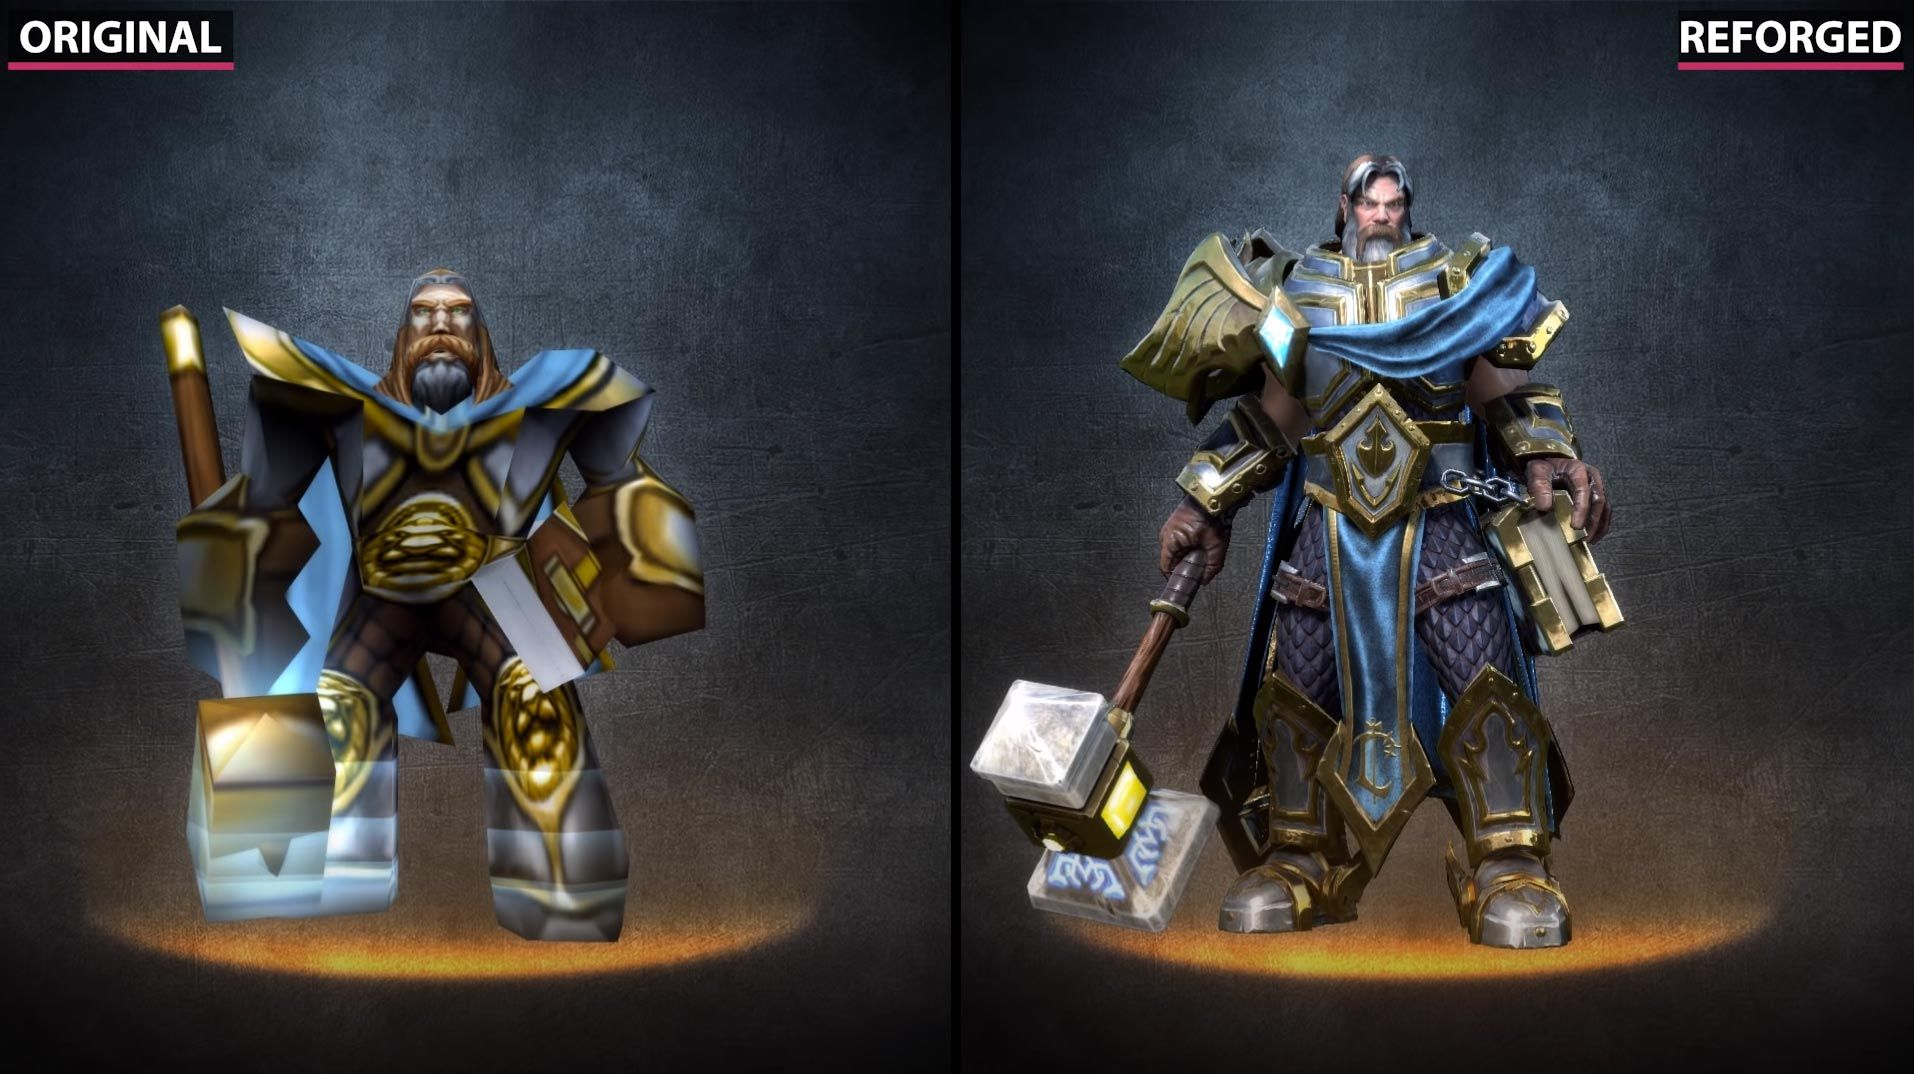 ▷ Warcraft 3 and Warcraft 3 Reforged Comparison (UNITS + HEROES